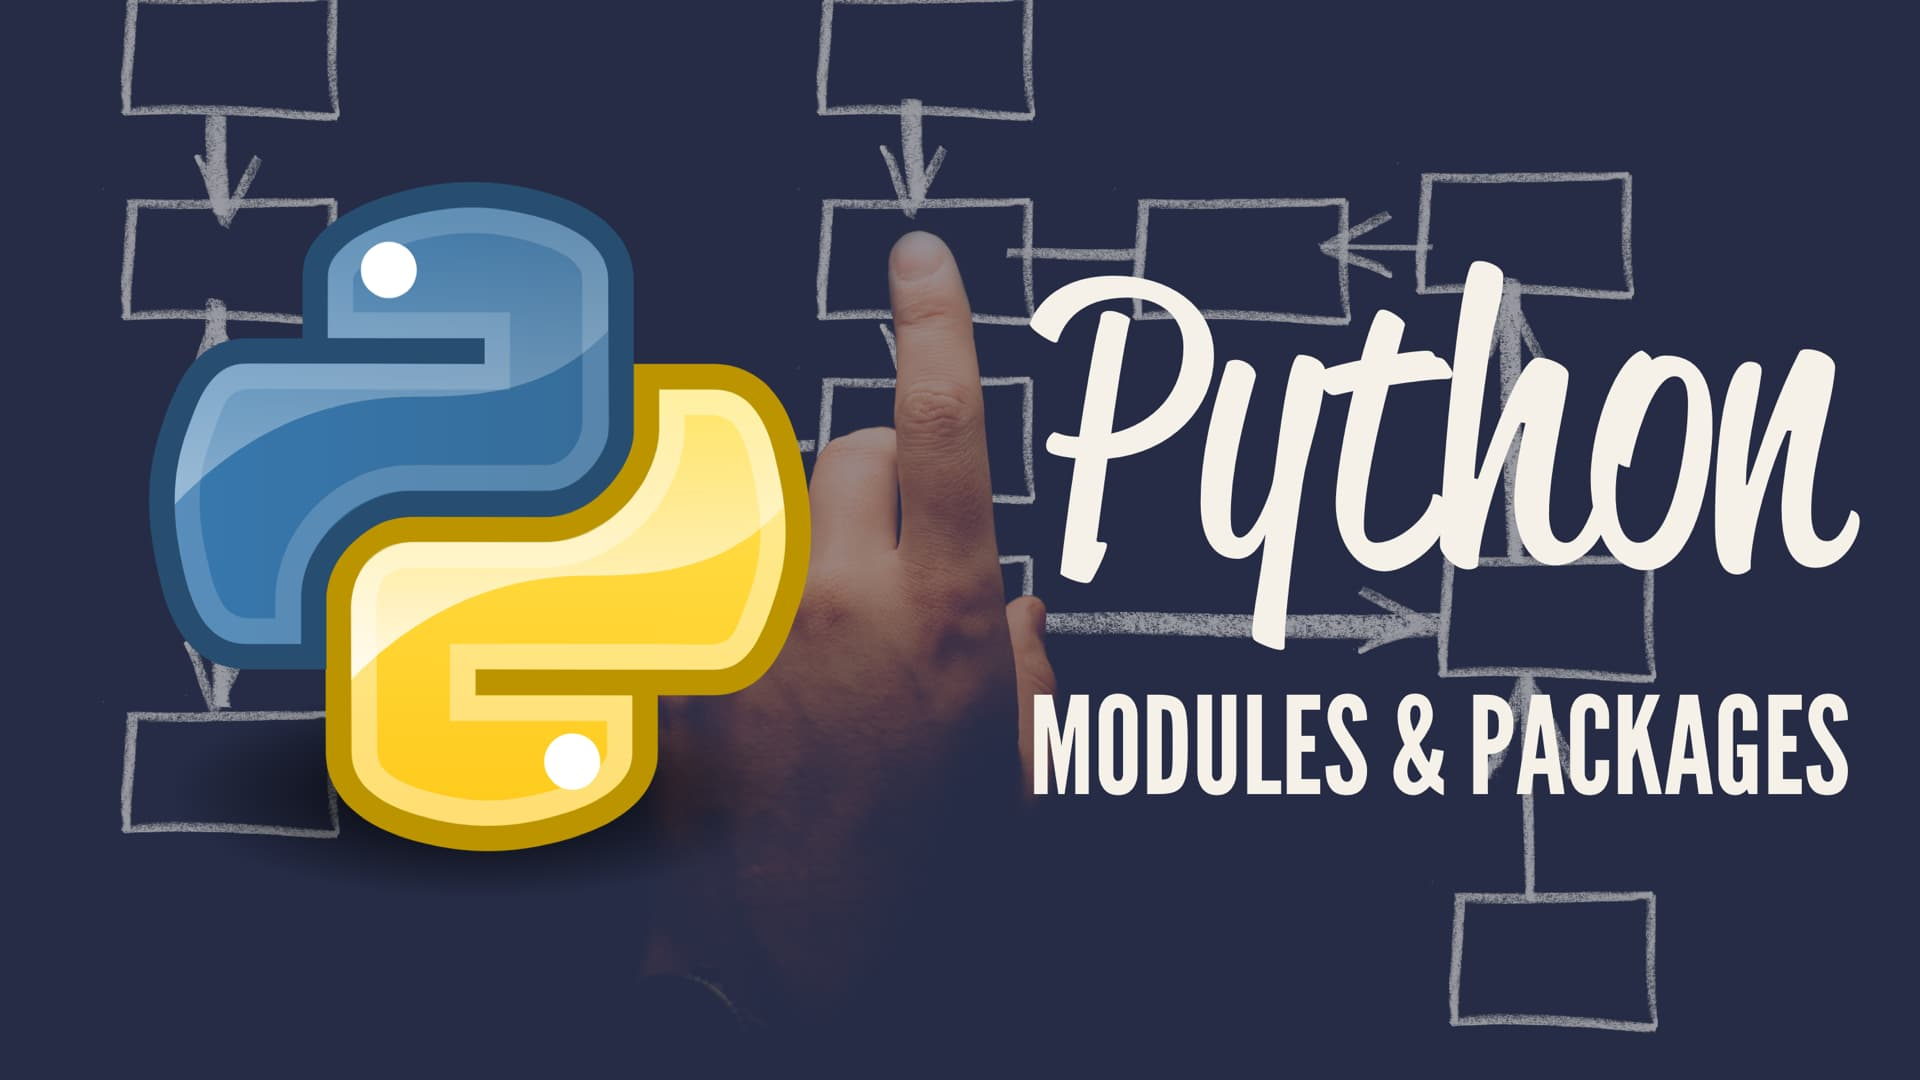 Python Modules & Packages